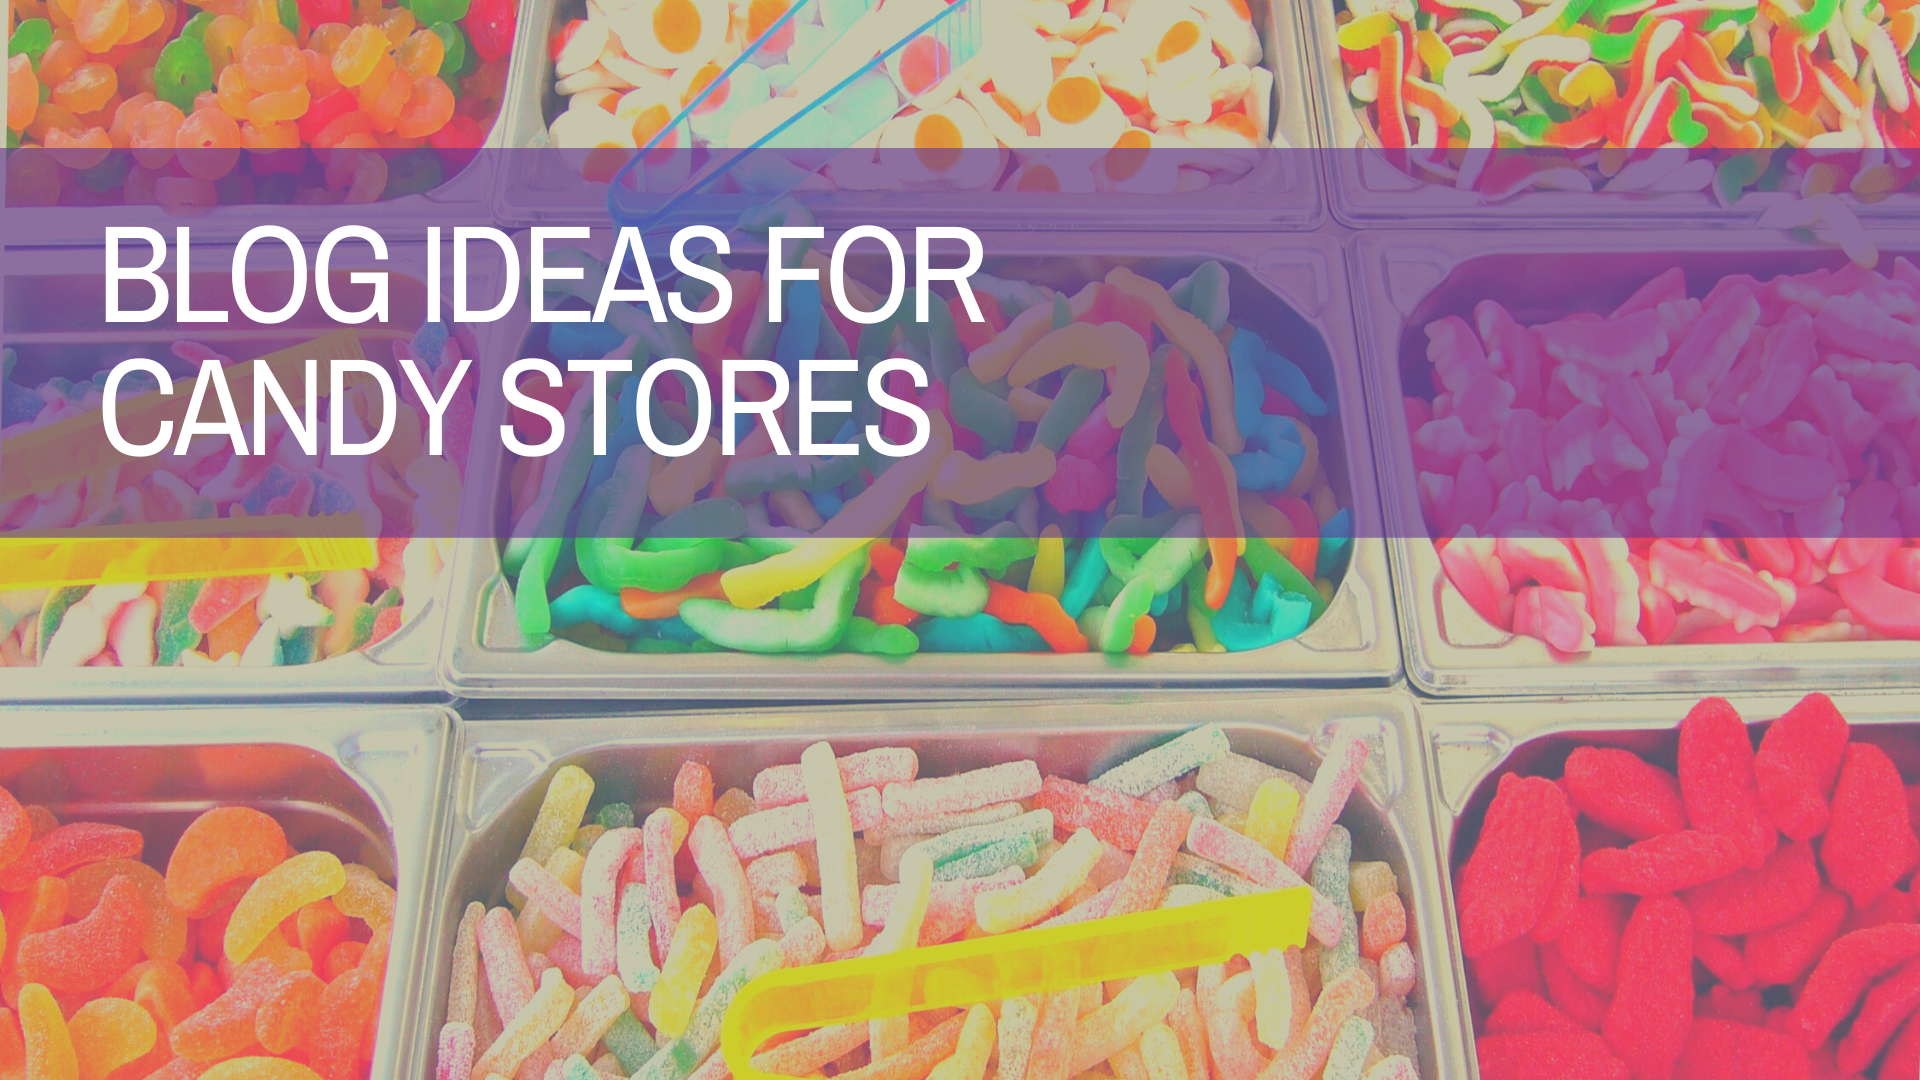 Blog Ideas for Candy Stores | Amplihigher